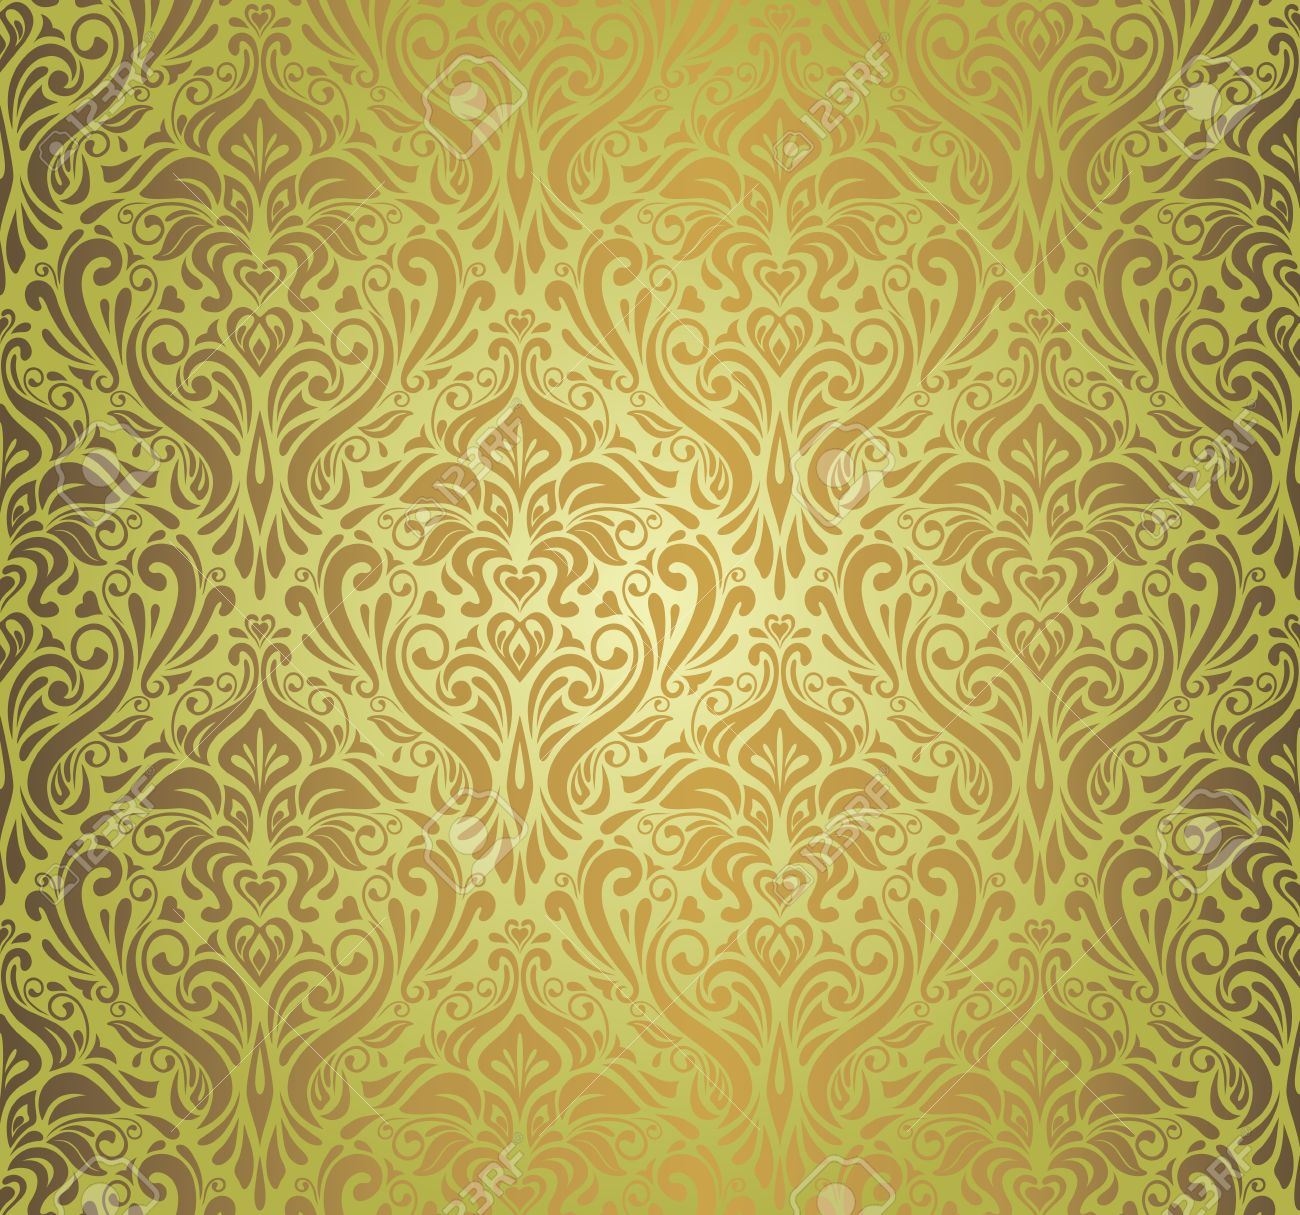 Green Brown Vintage Wallpaper Design Royalty Free Cliparts - Green and brown wallpaper